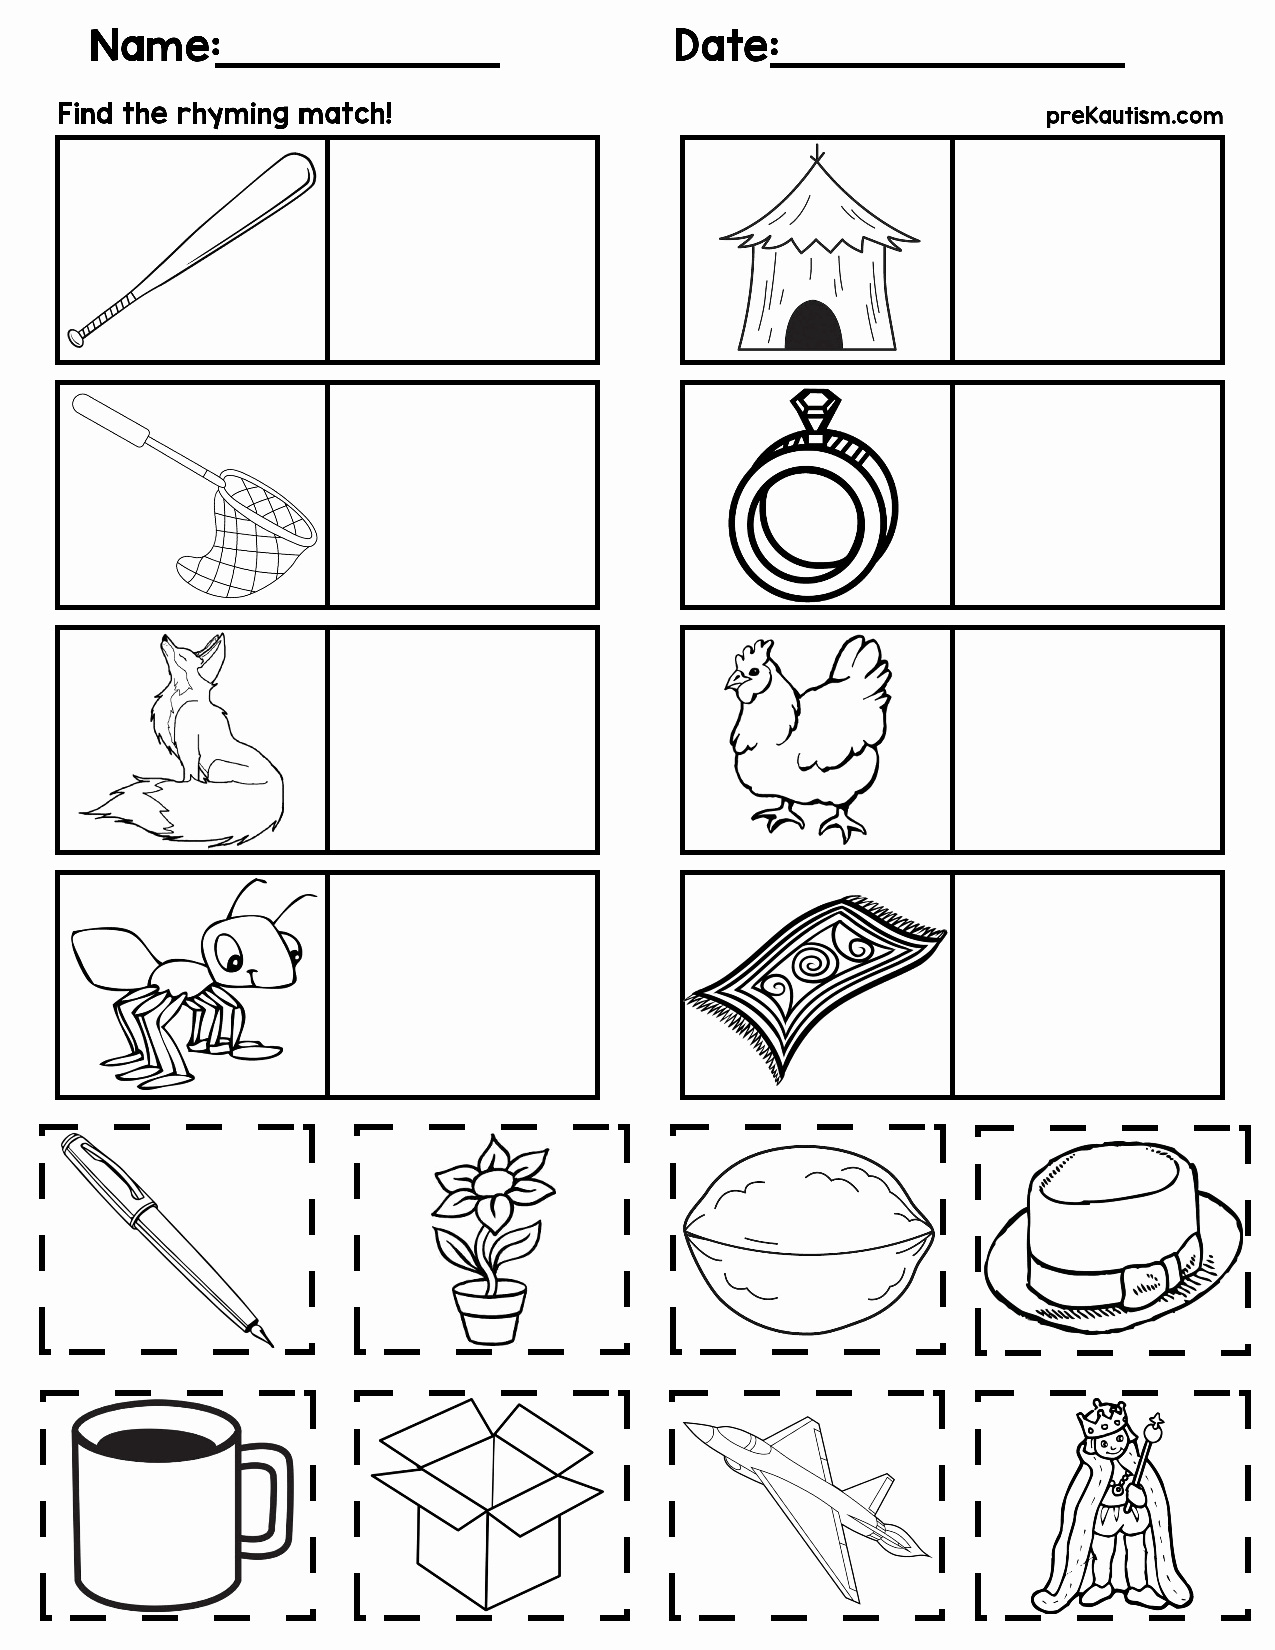 Rhyming Worksheets for Preschoolers Inspirational Matching Rhyming Words